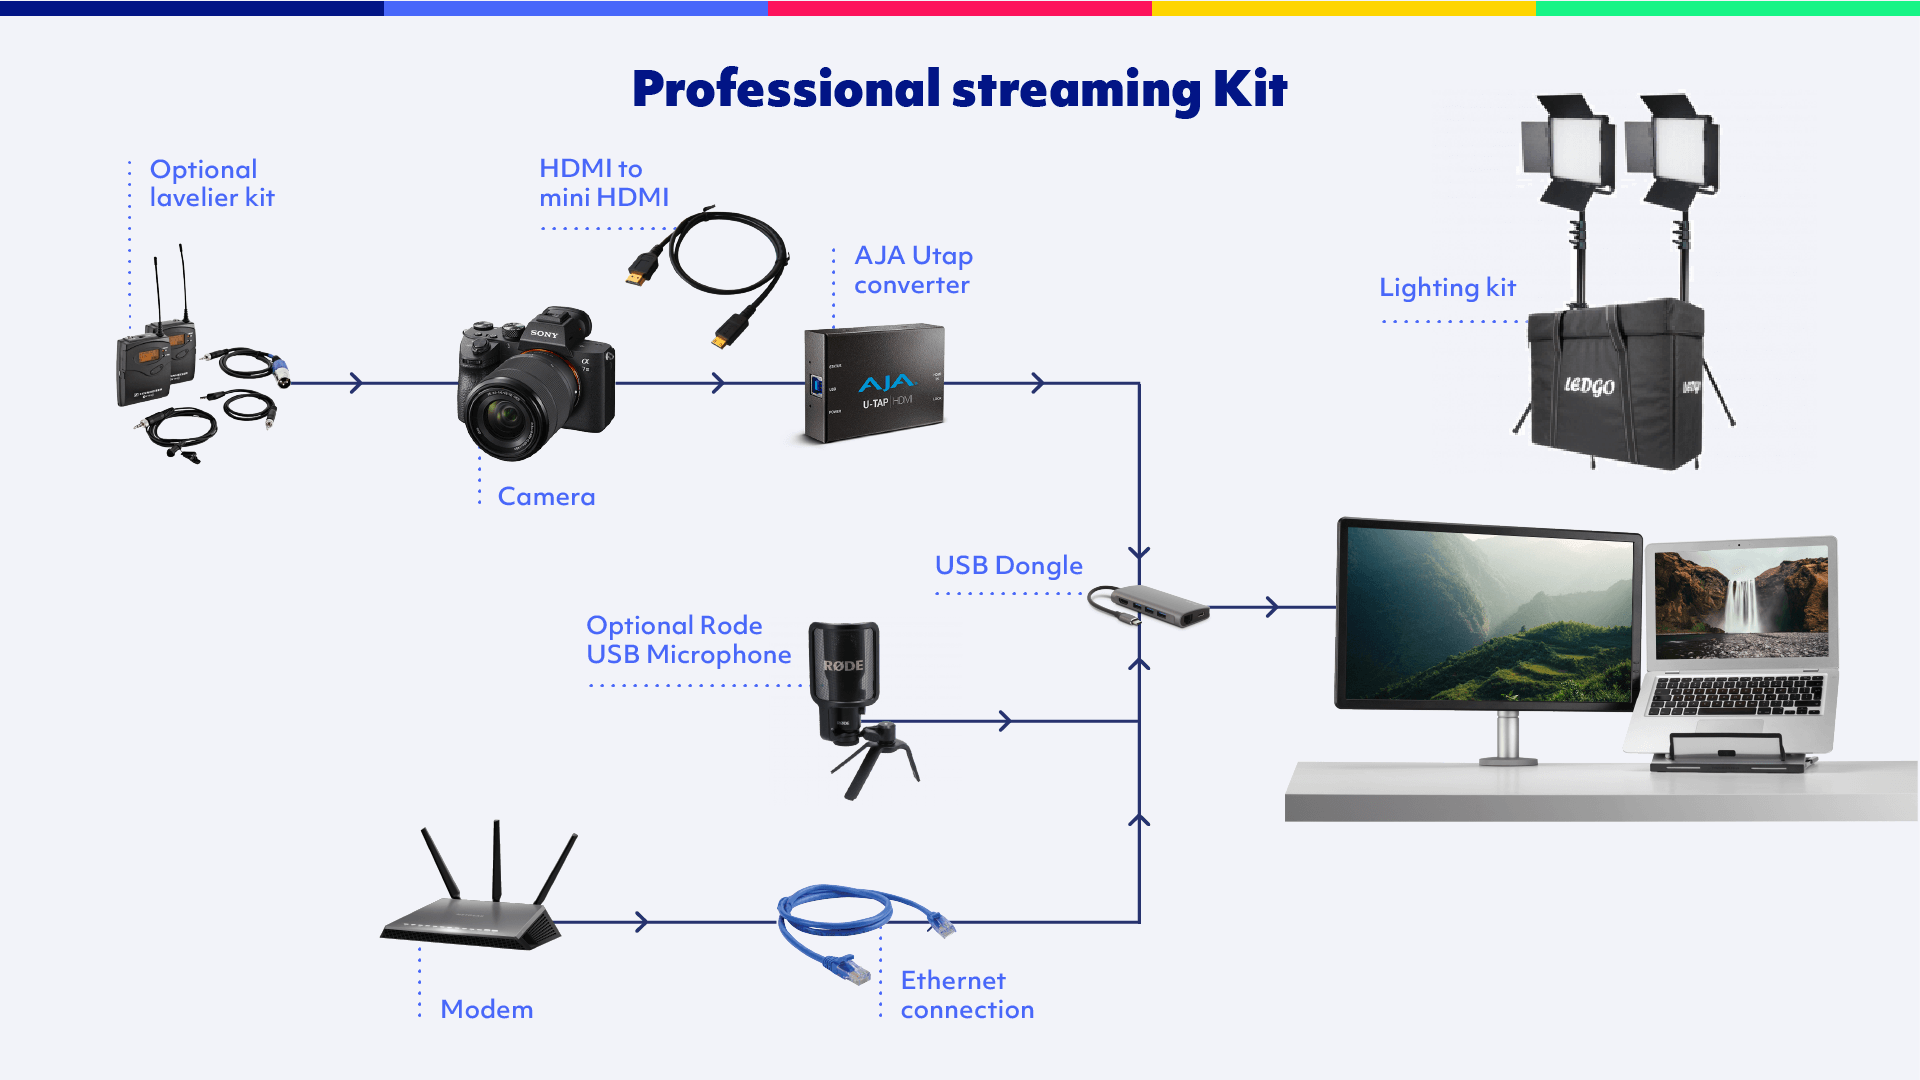 How to connect the professional webinar setup